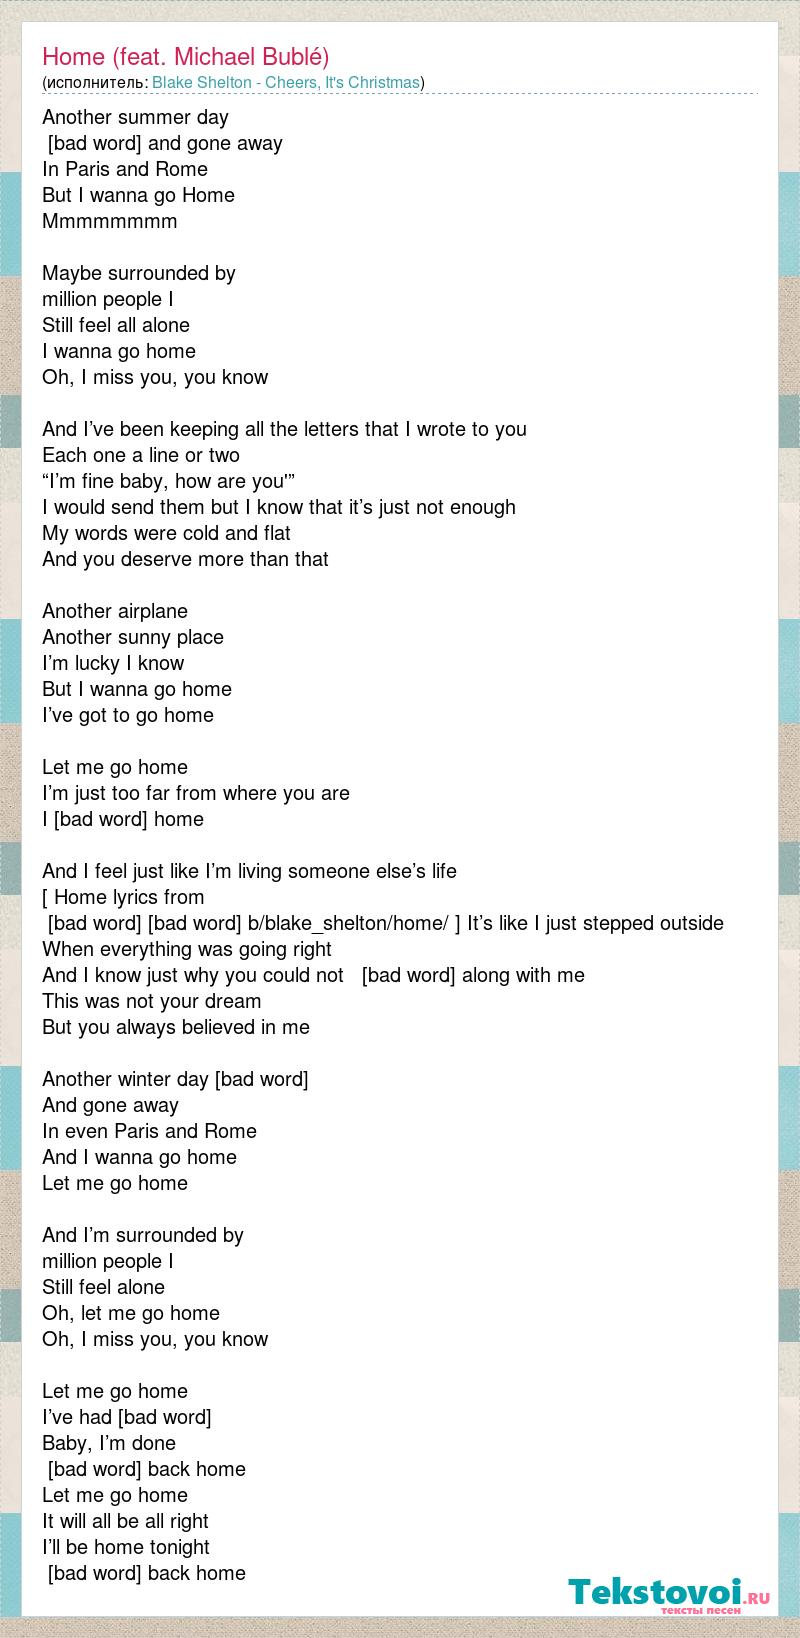 bublé home lyrics